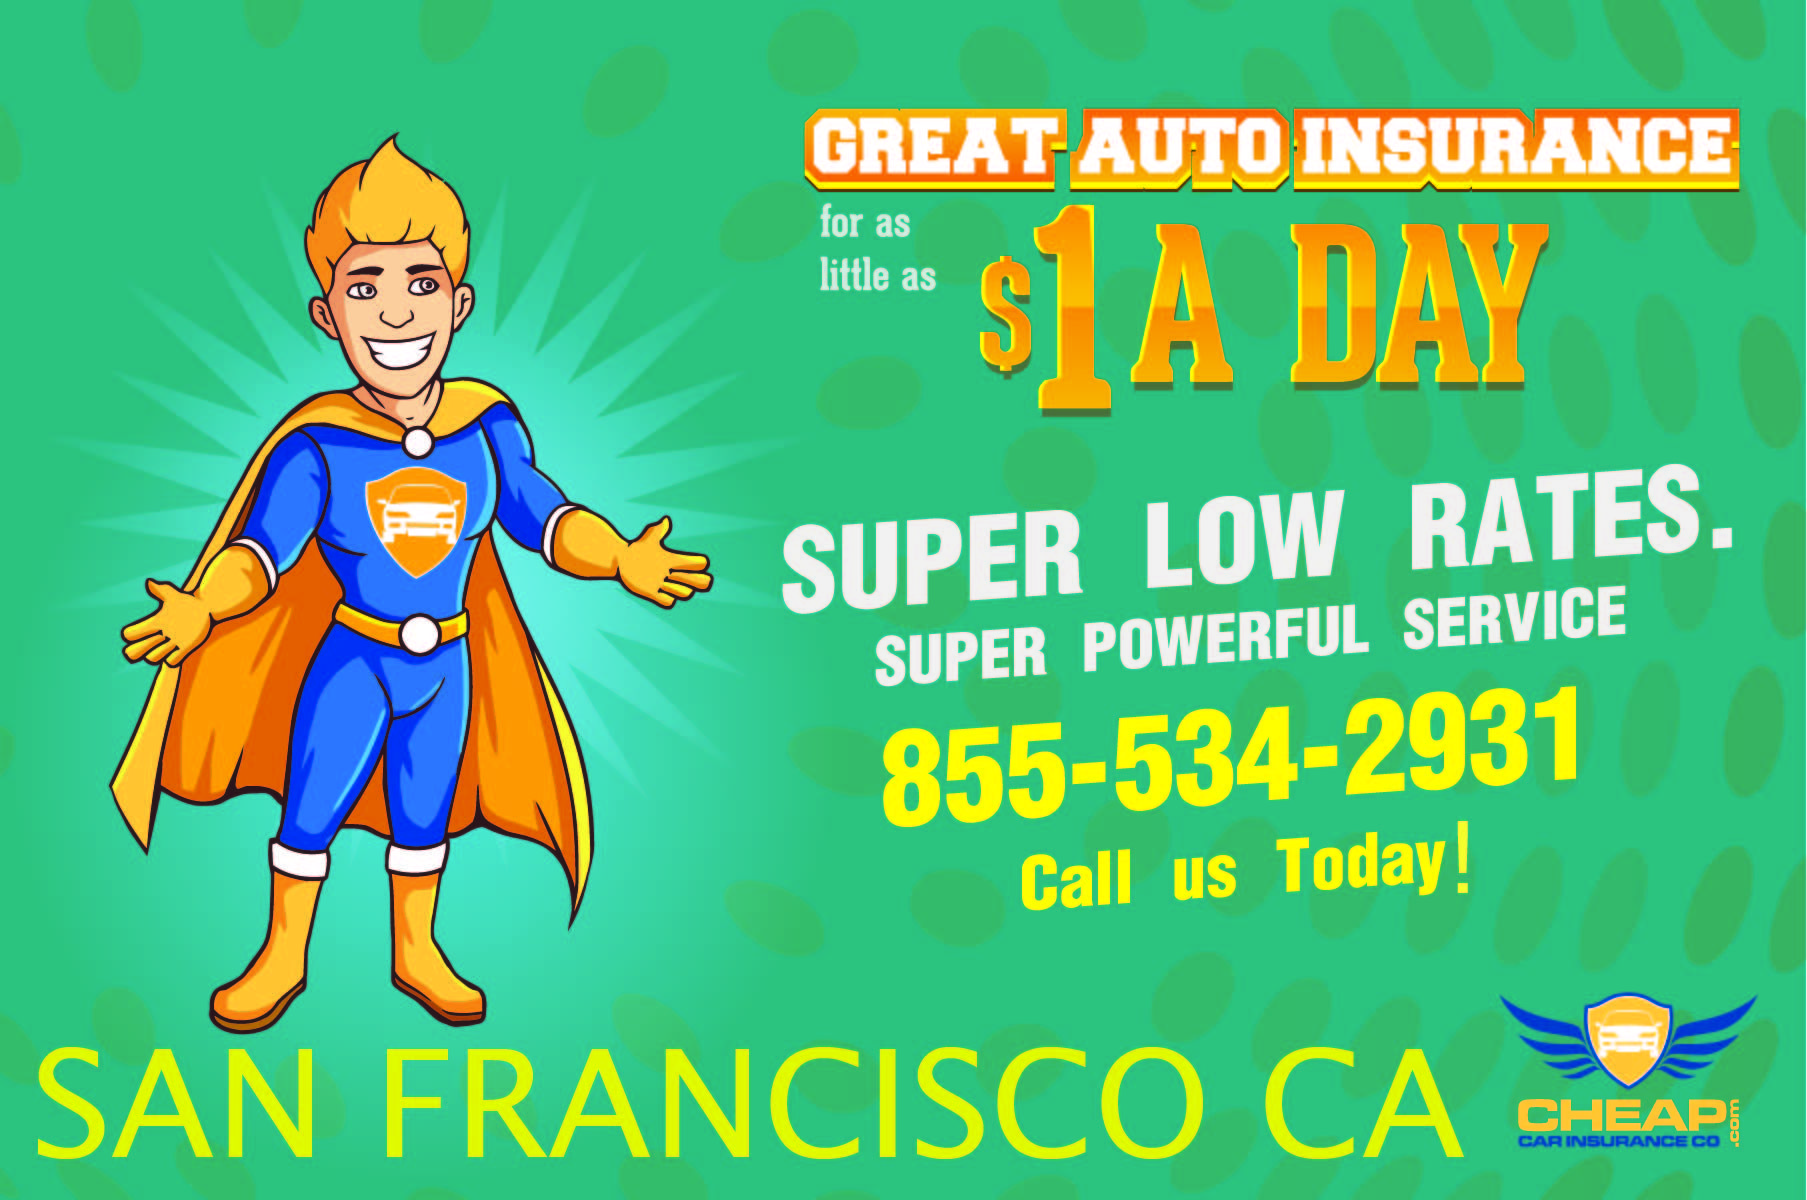 Affordable Auto Insurance In San Francisco California 50 Lower Cost On Car Insurance California Affordable Car Insurance Cheap Car Insurance Car Insurance